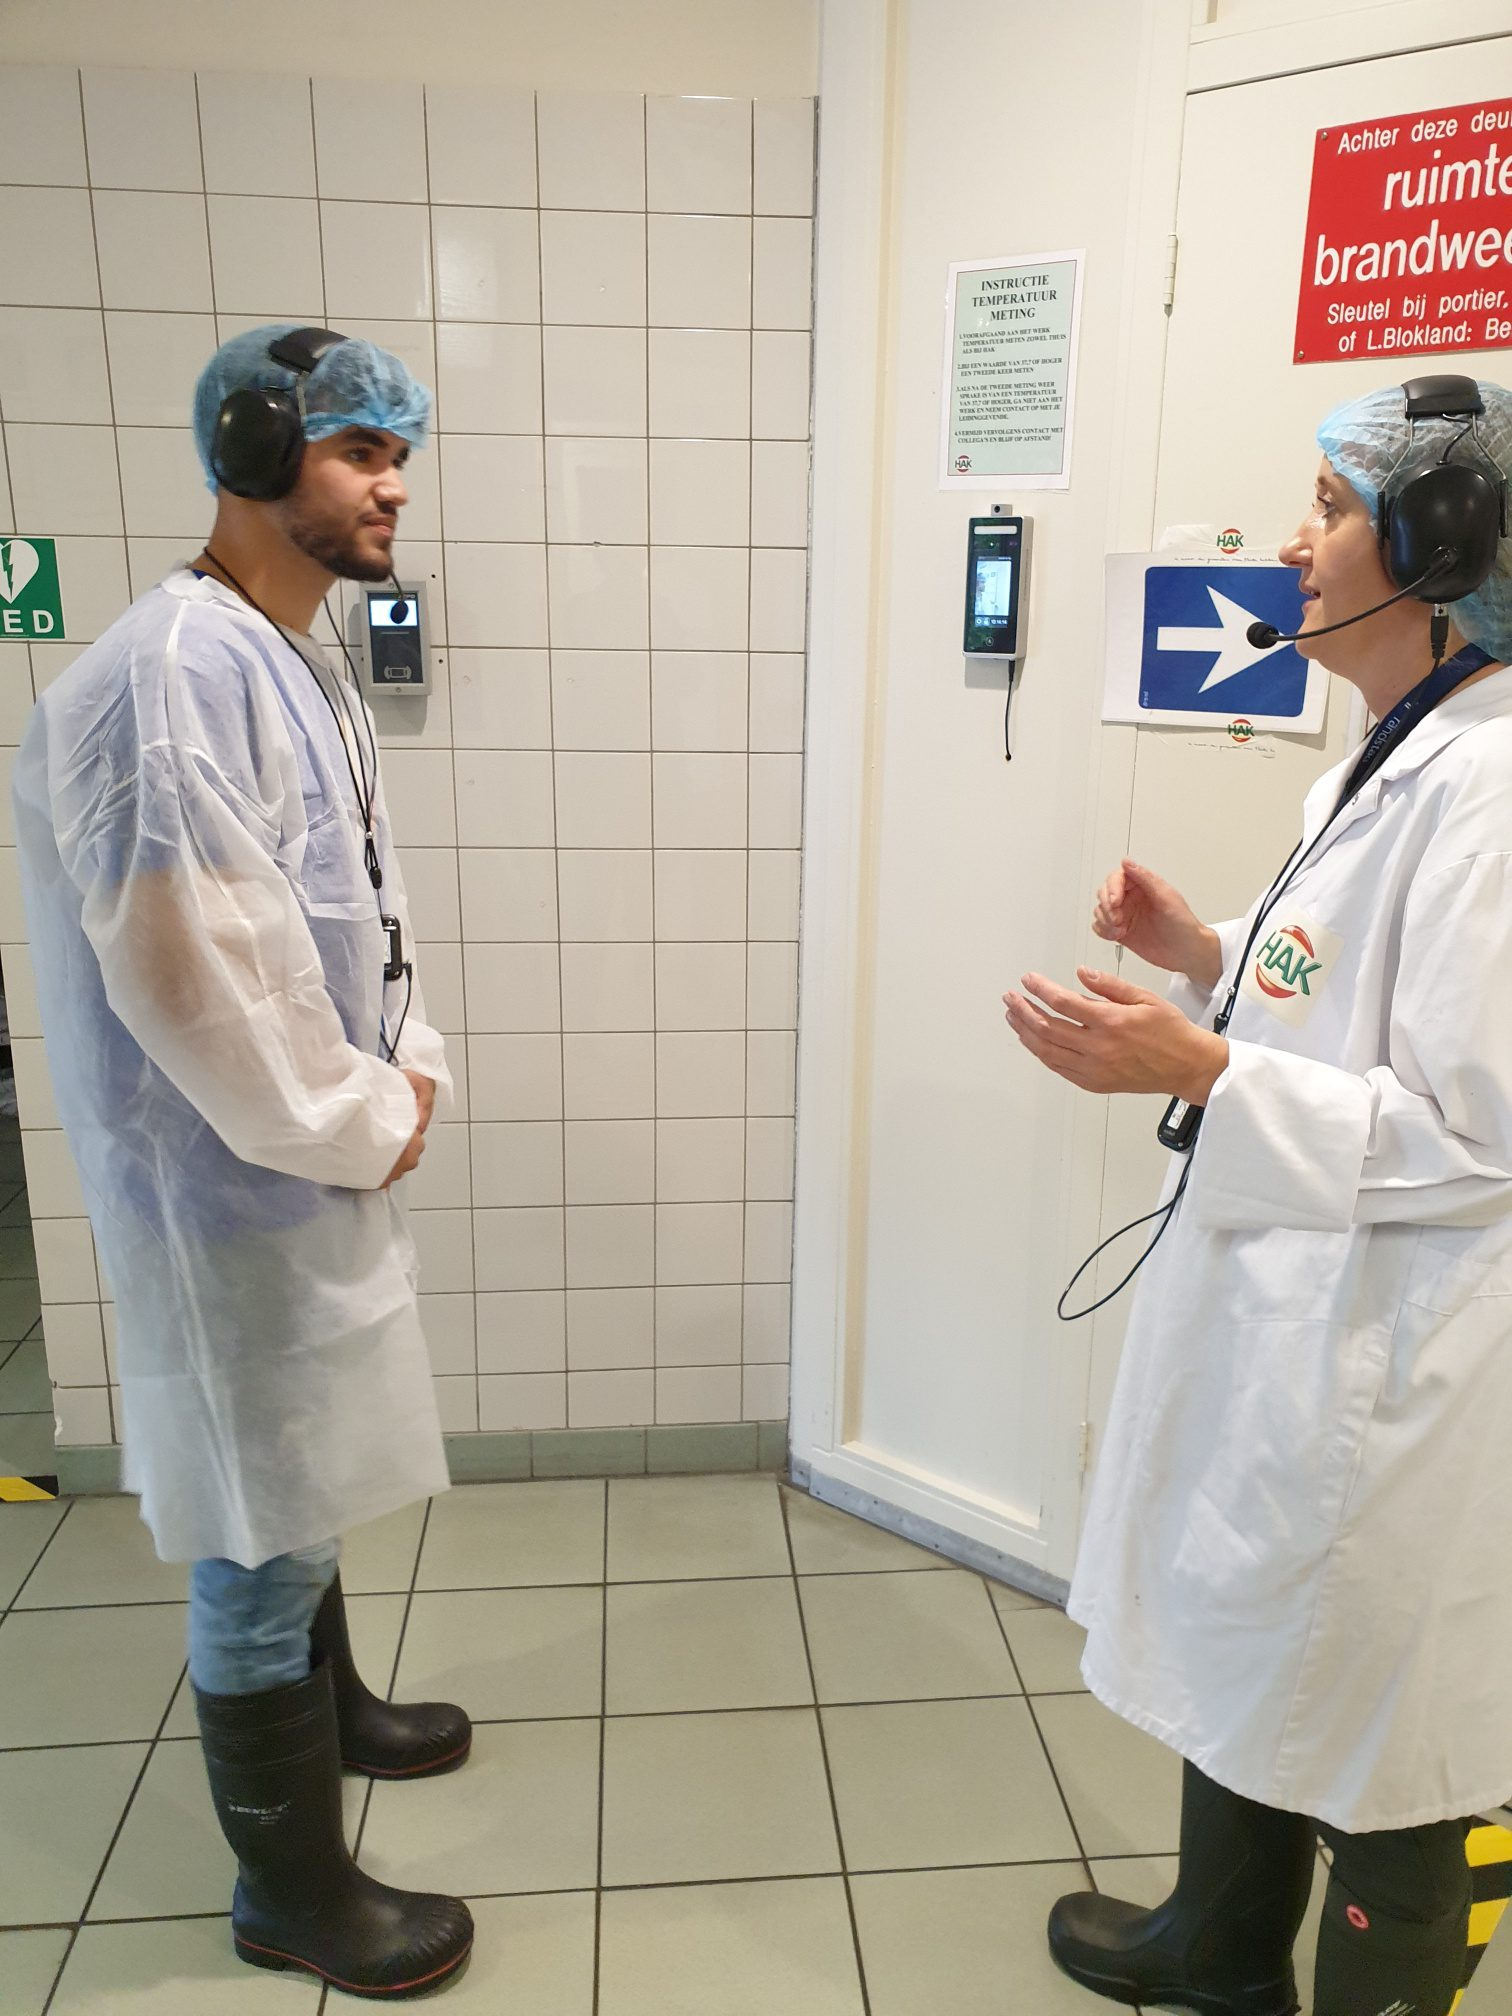 hak instructs staff with wireless factory headsets